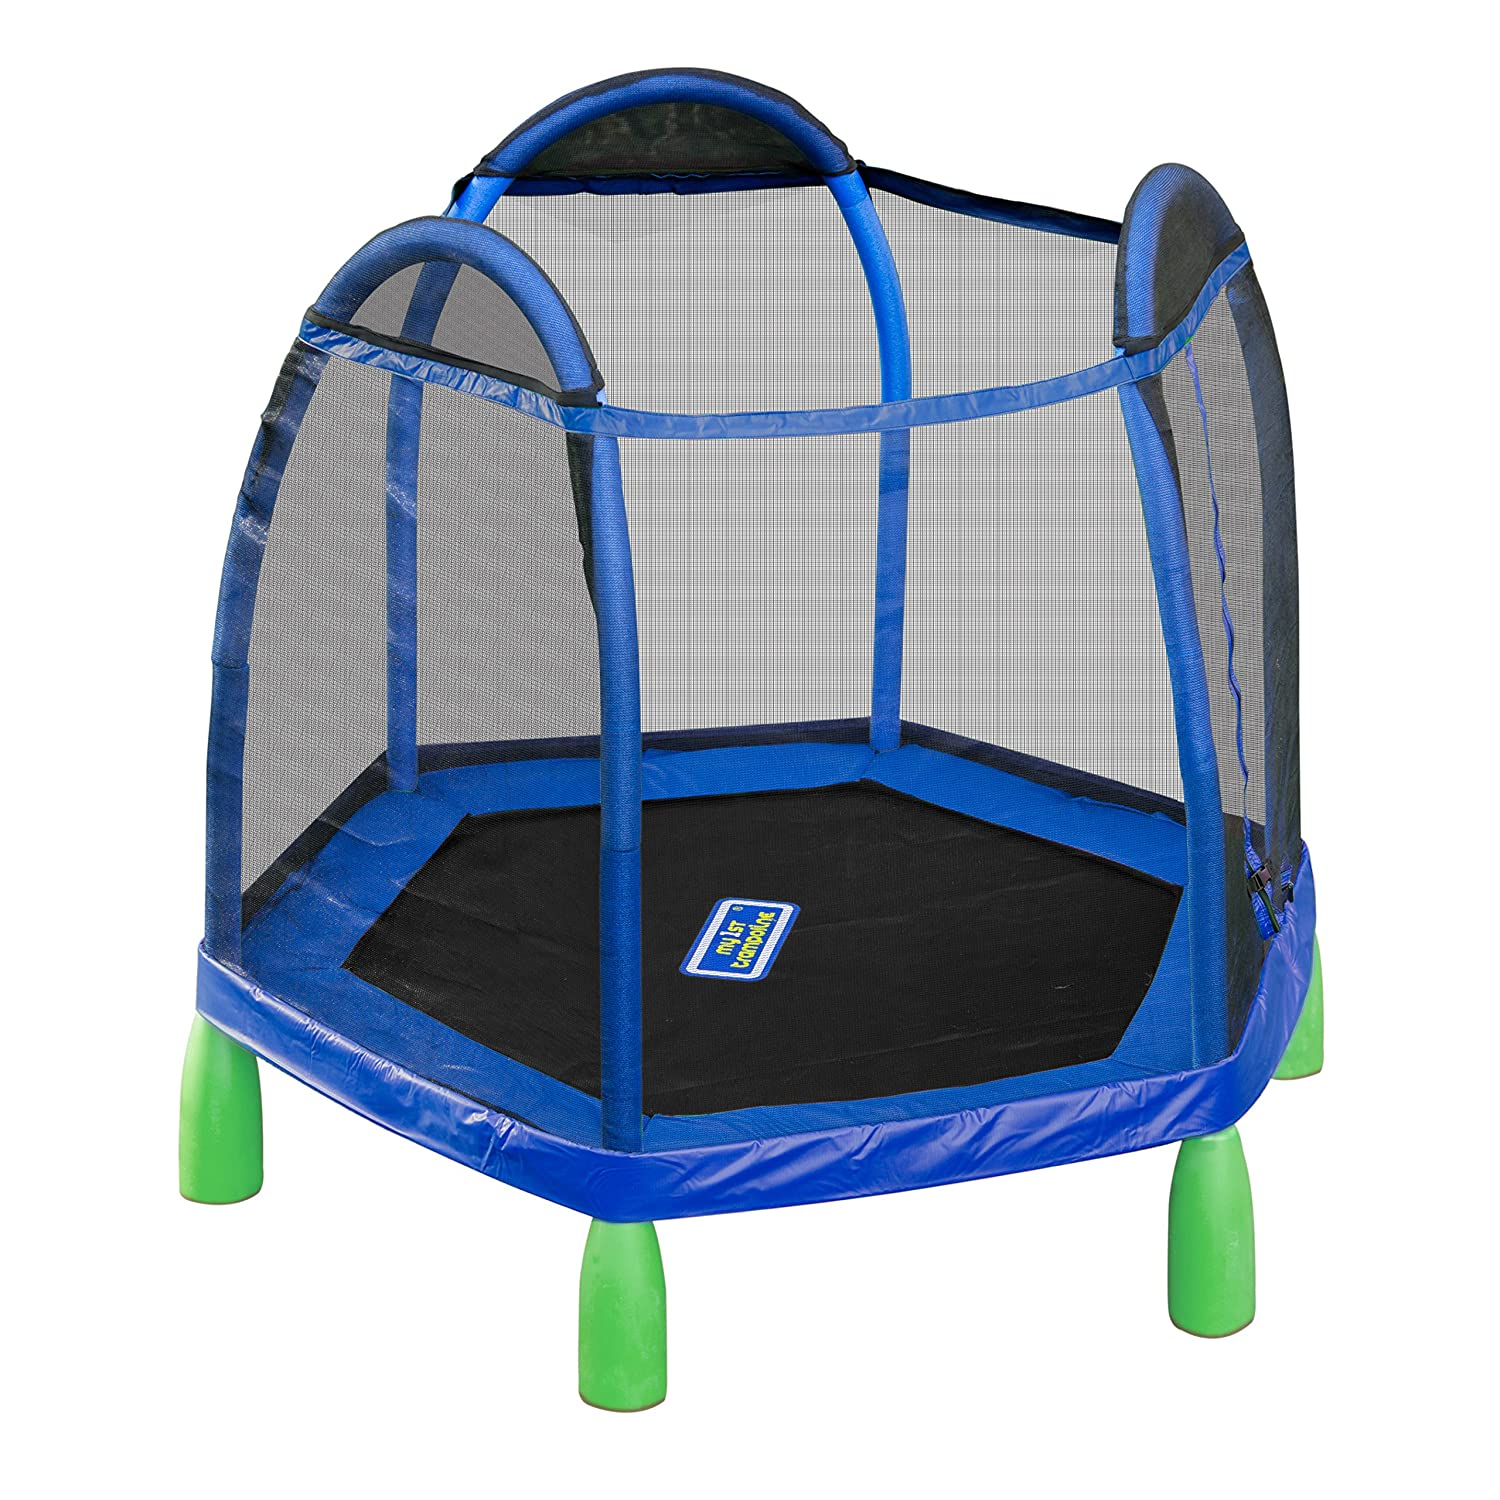 Softbounce And Hardbounce Mini Trampolines: BEST TRAMPOLINES REVIEWS 2019